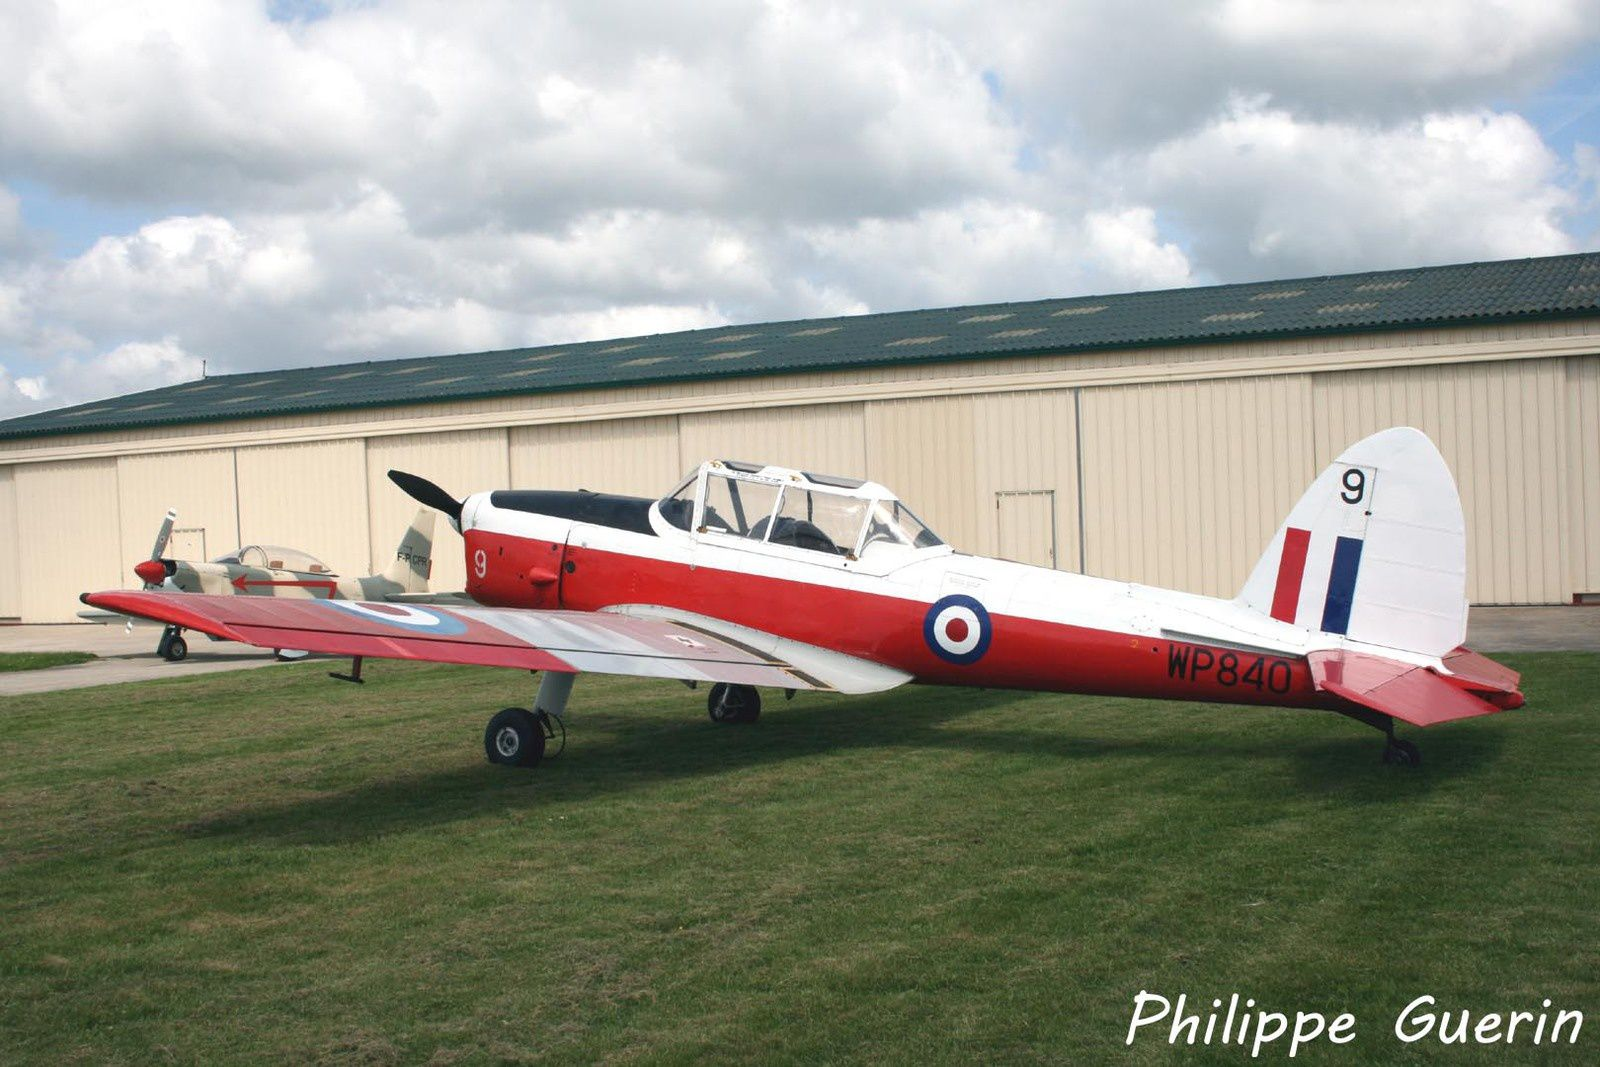 Le DHC-1 Chipmunck WP840 F-AZQM (Photo Philippe Guerin)